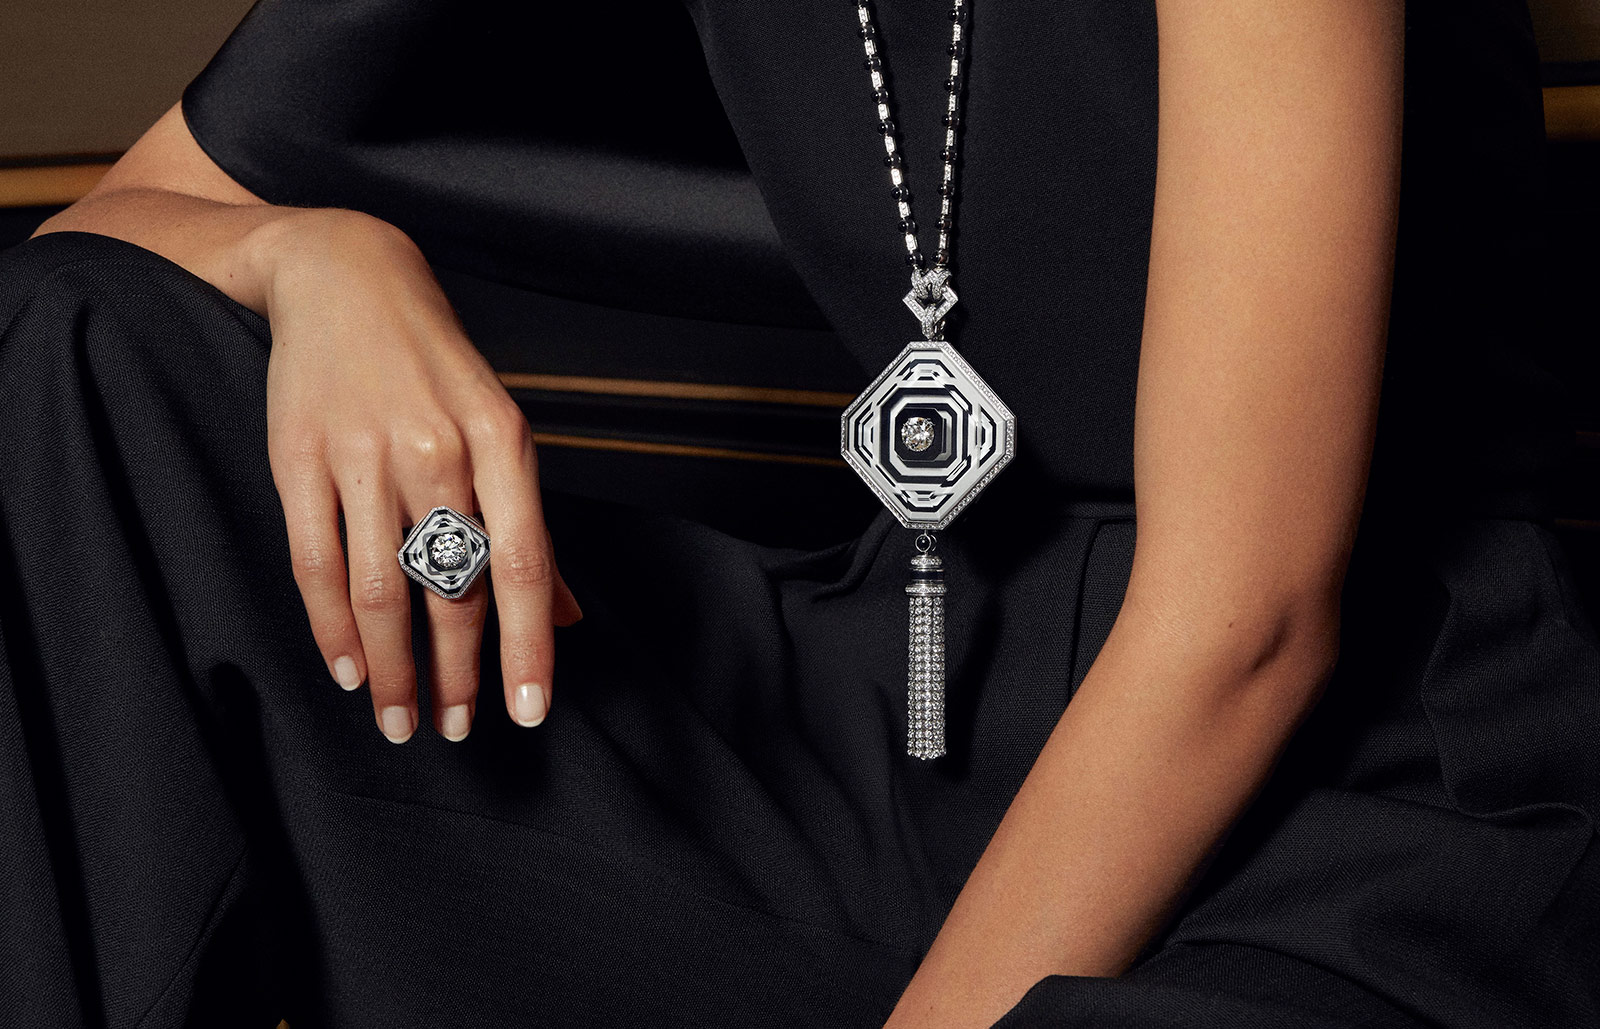 Boucheron '26V' necklace and ring with cacholong, onyx, rock crystal and diamonds